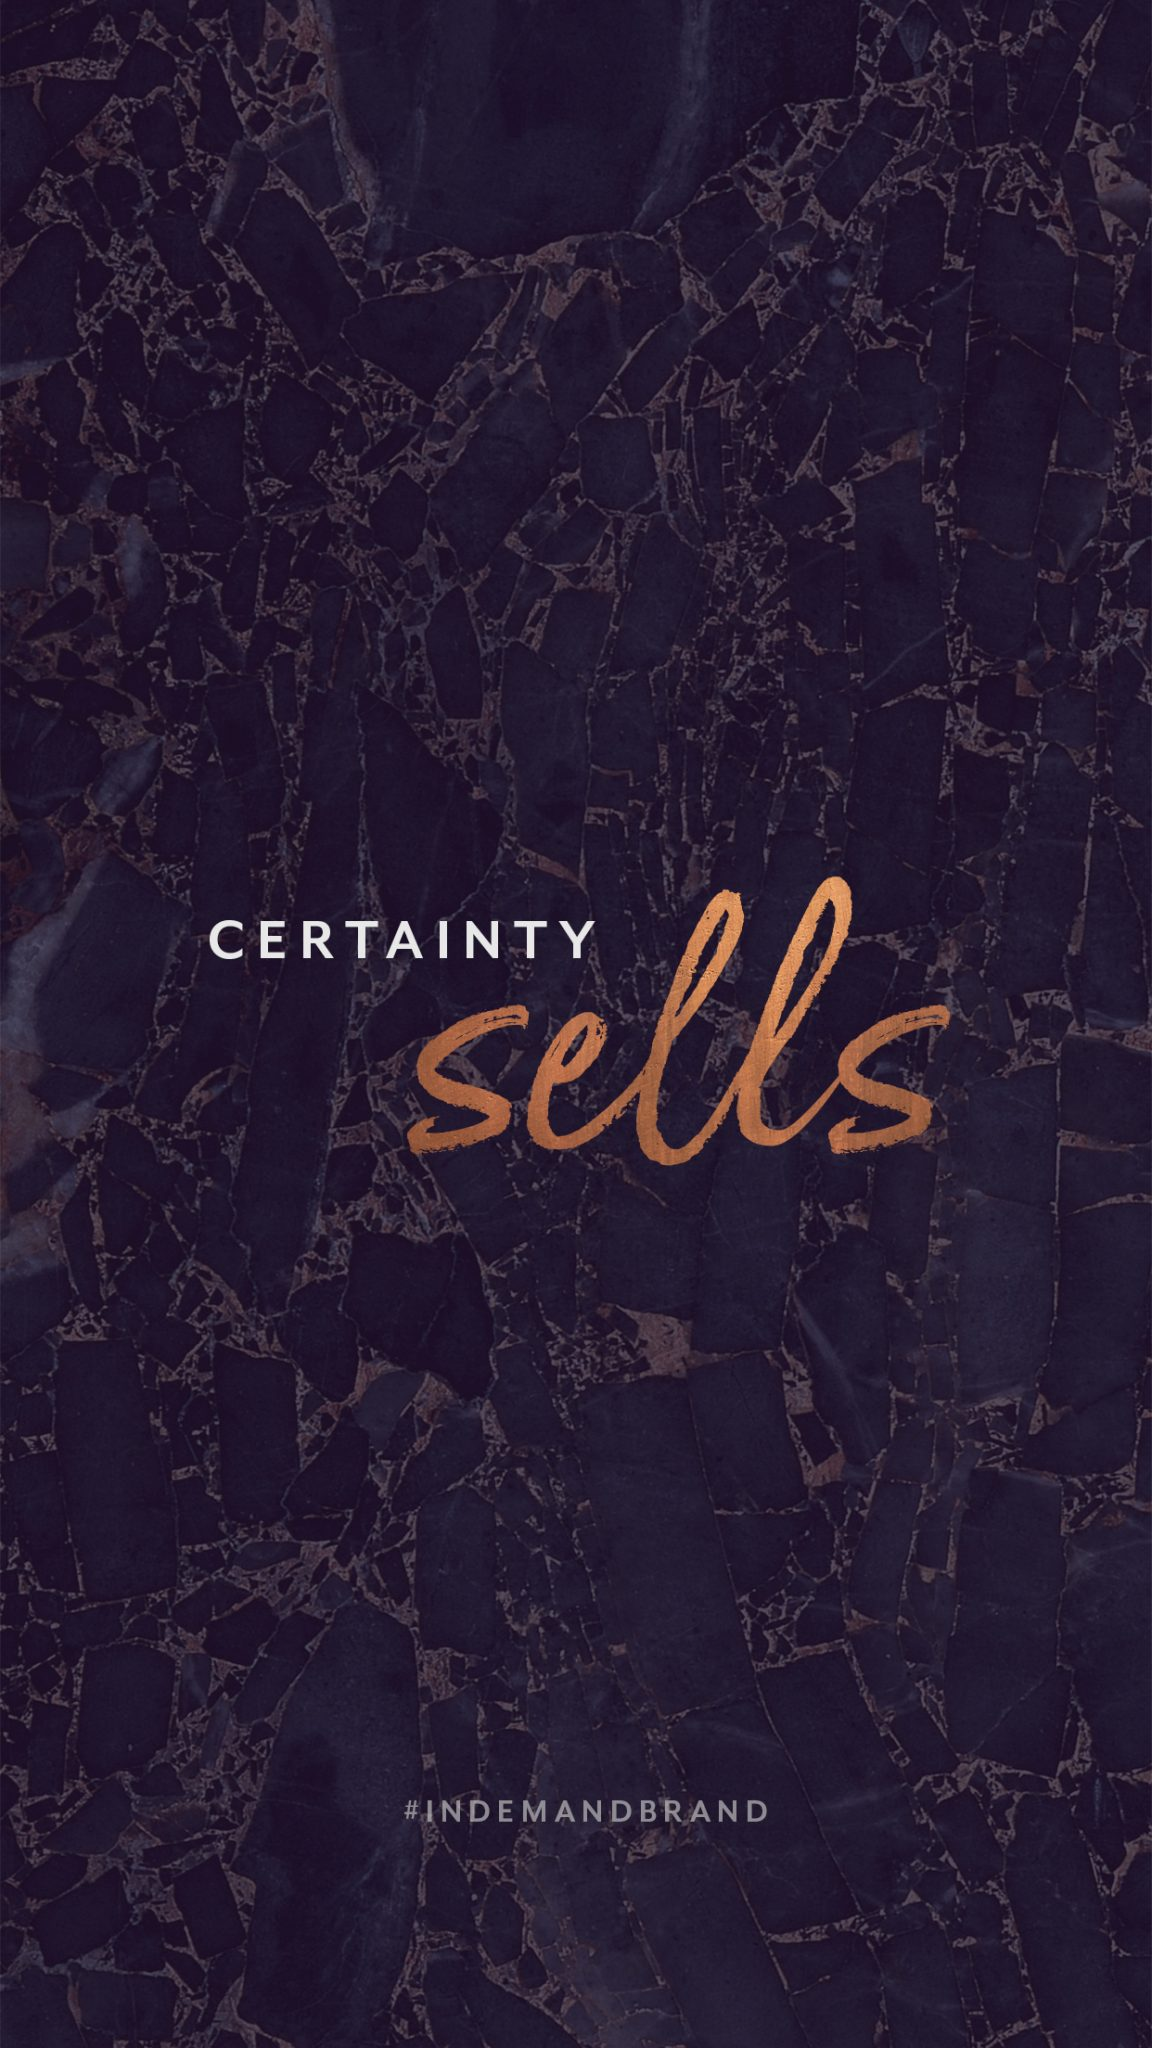 Certainty sells. #InDemandBrand